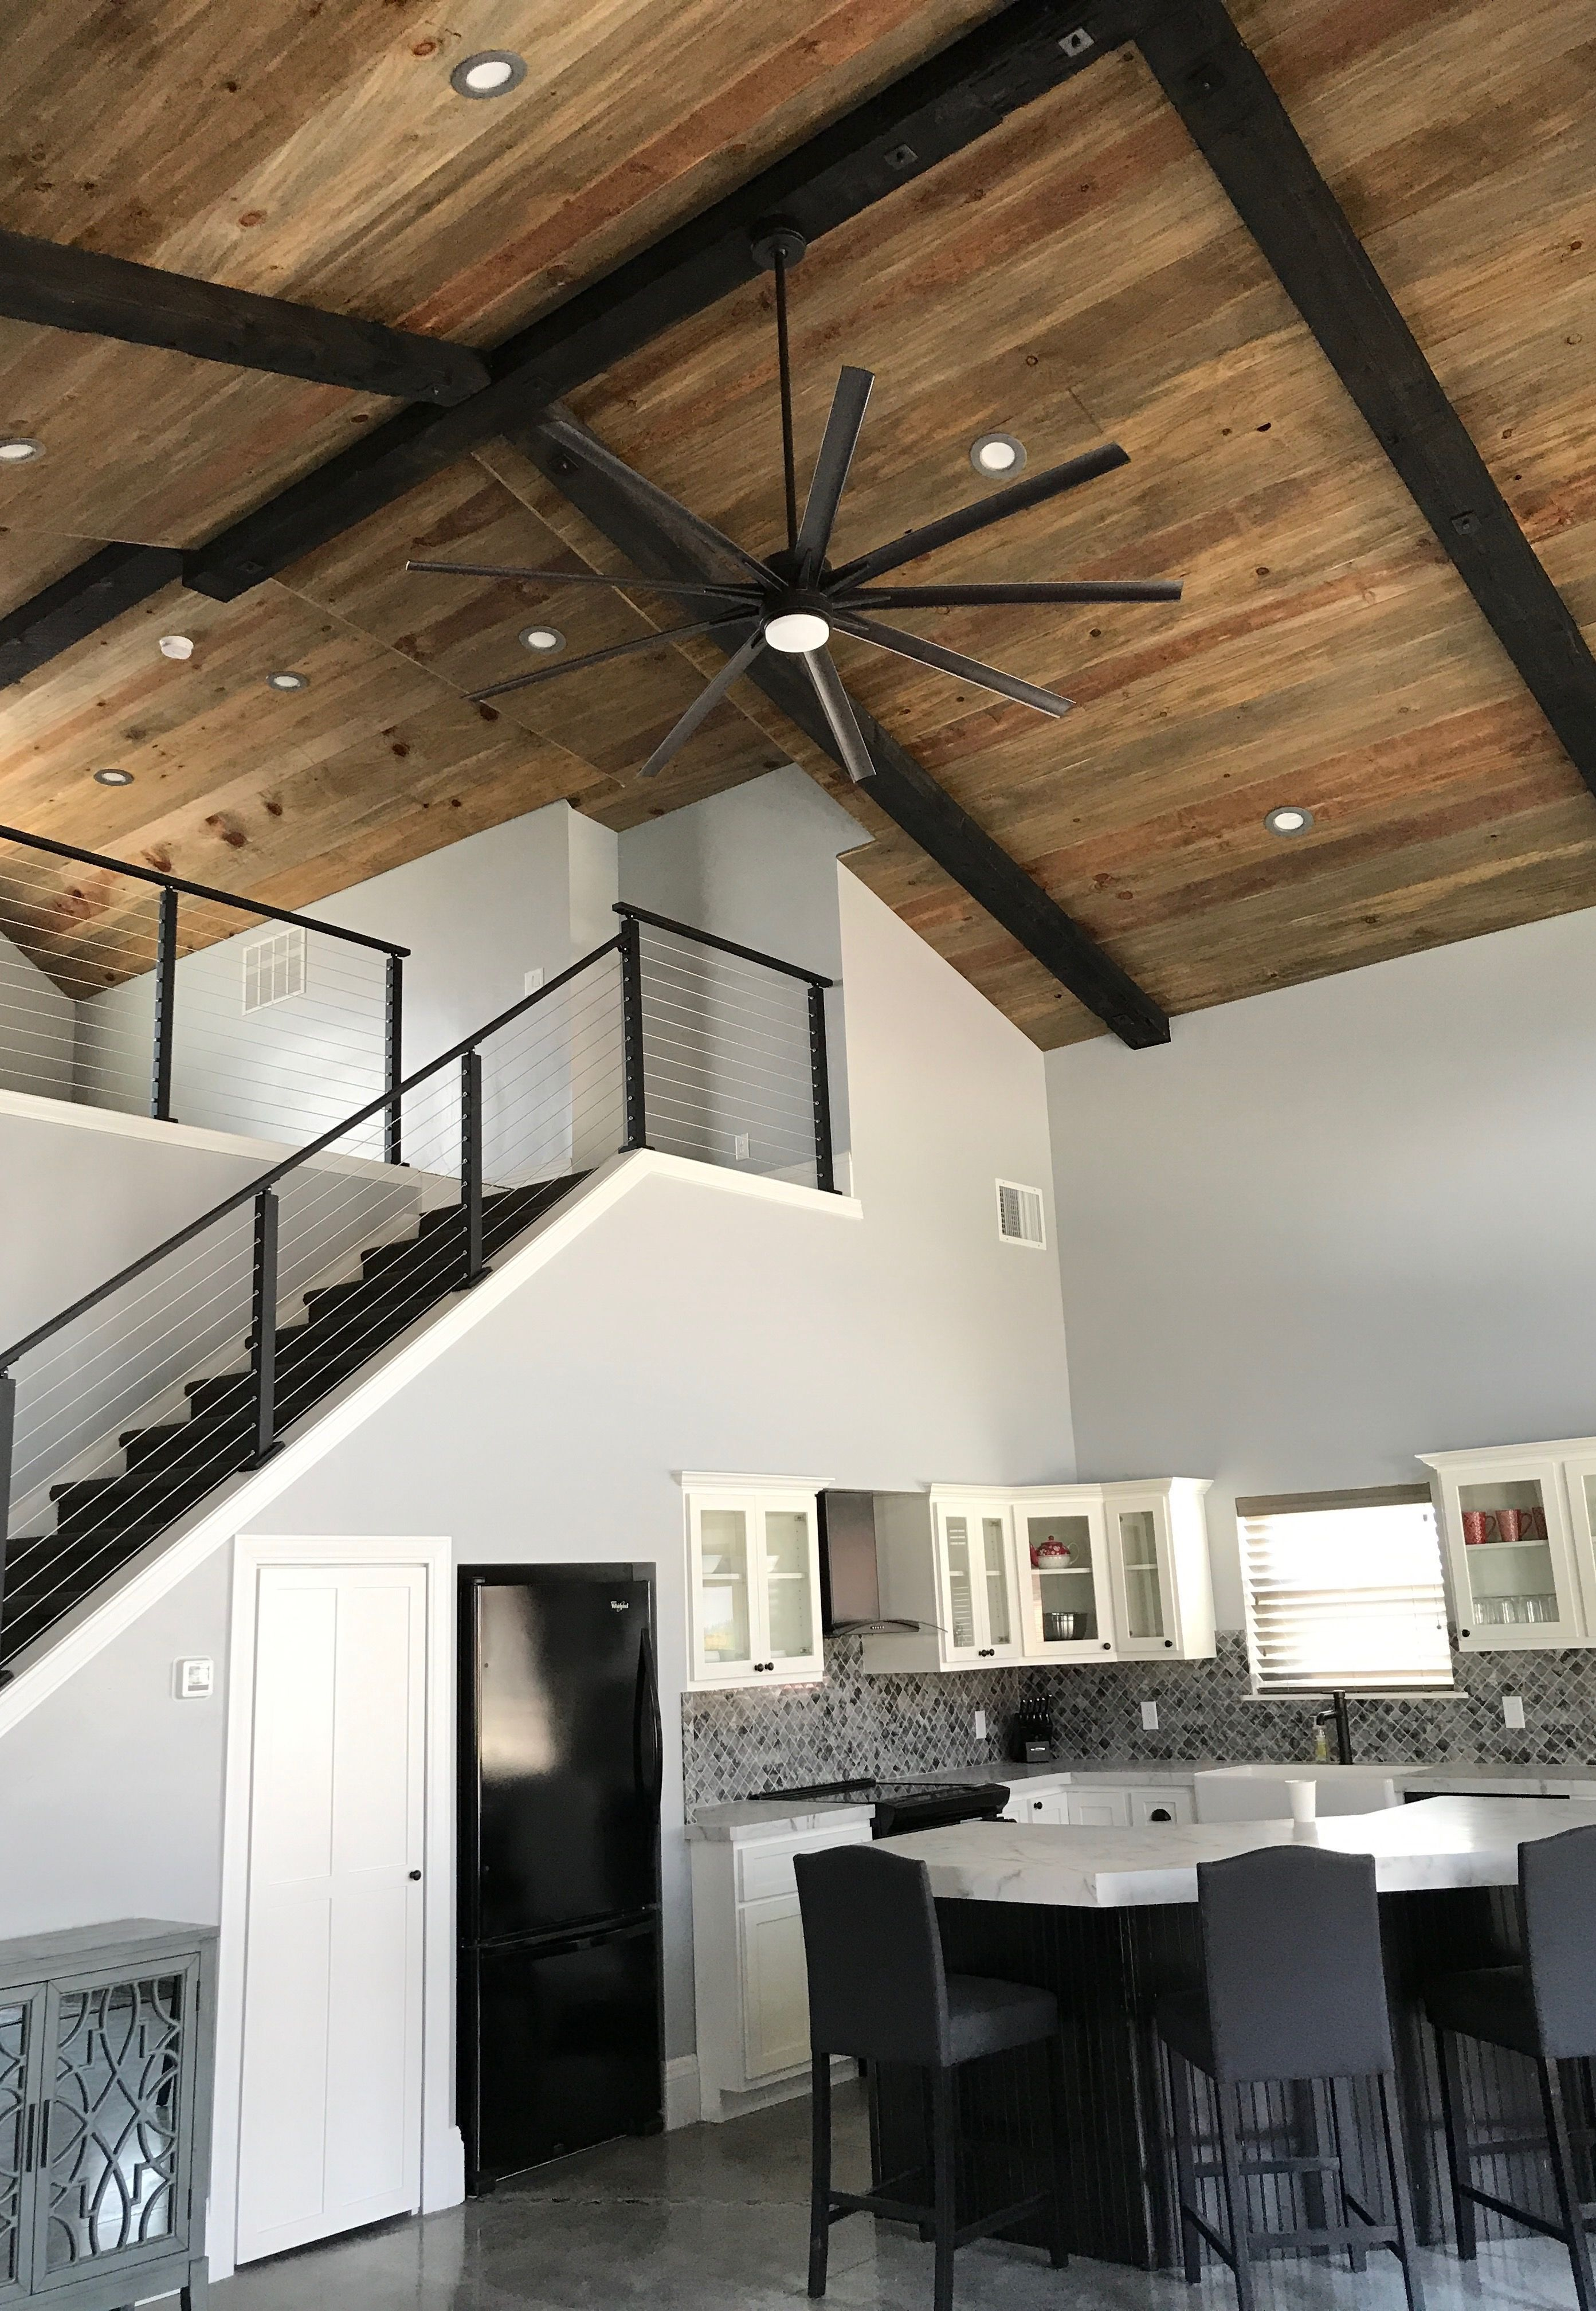 27 Wonderful White Wood Beams Ceiling Ideas For Cottage In 2020